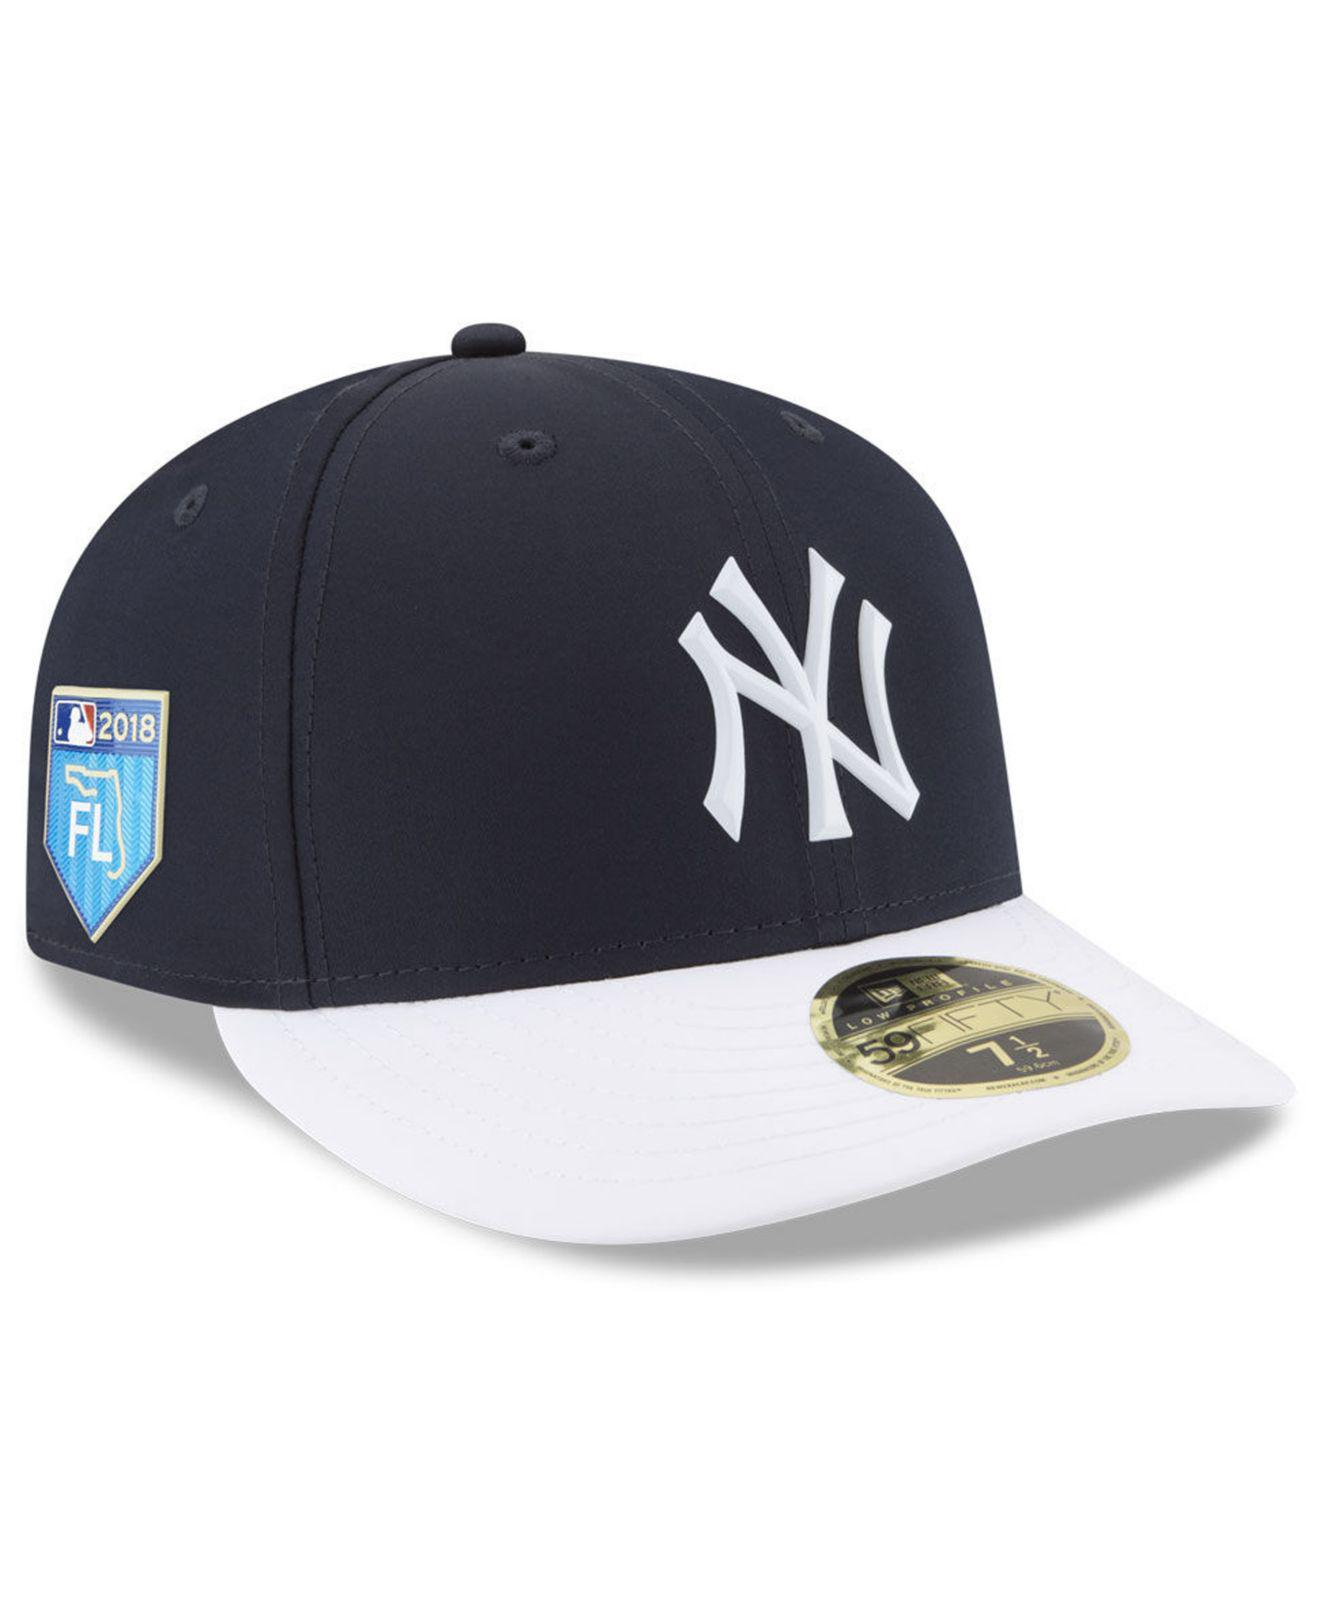 7976c544f43 KTZ. Men s Blue New York Yankees Spring Training Pro Light 59fifty Fitted  Cap